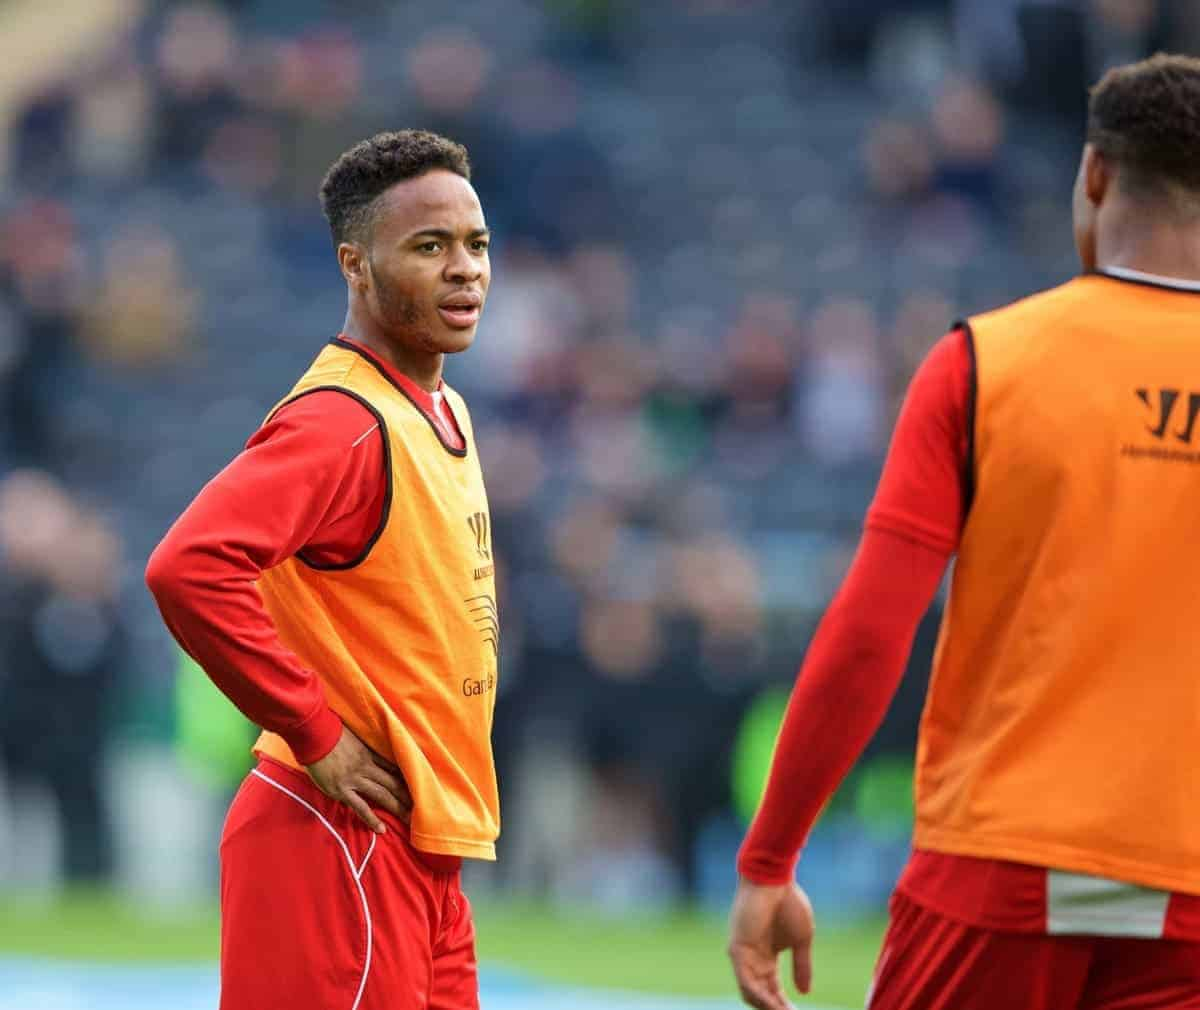 KINGSTON-UPON-HULL, ENGLAND - Tuesday, April 28, 2015: Liverpool's Raheem Sterling before the game against Hull City in the Premier League match at the KC Stadium. (Pic by Gareth Jones/Propaganda)